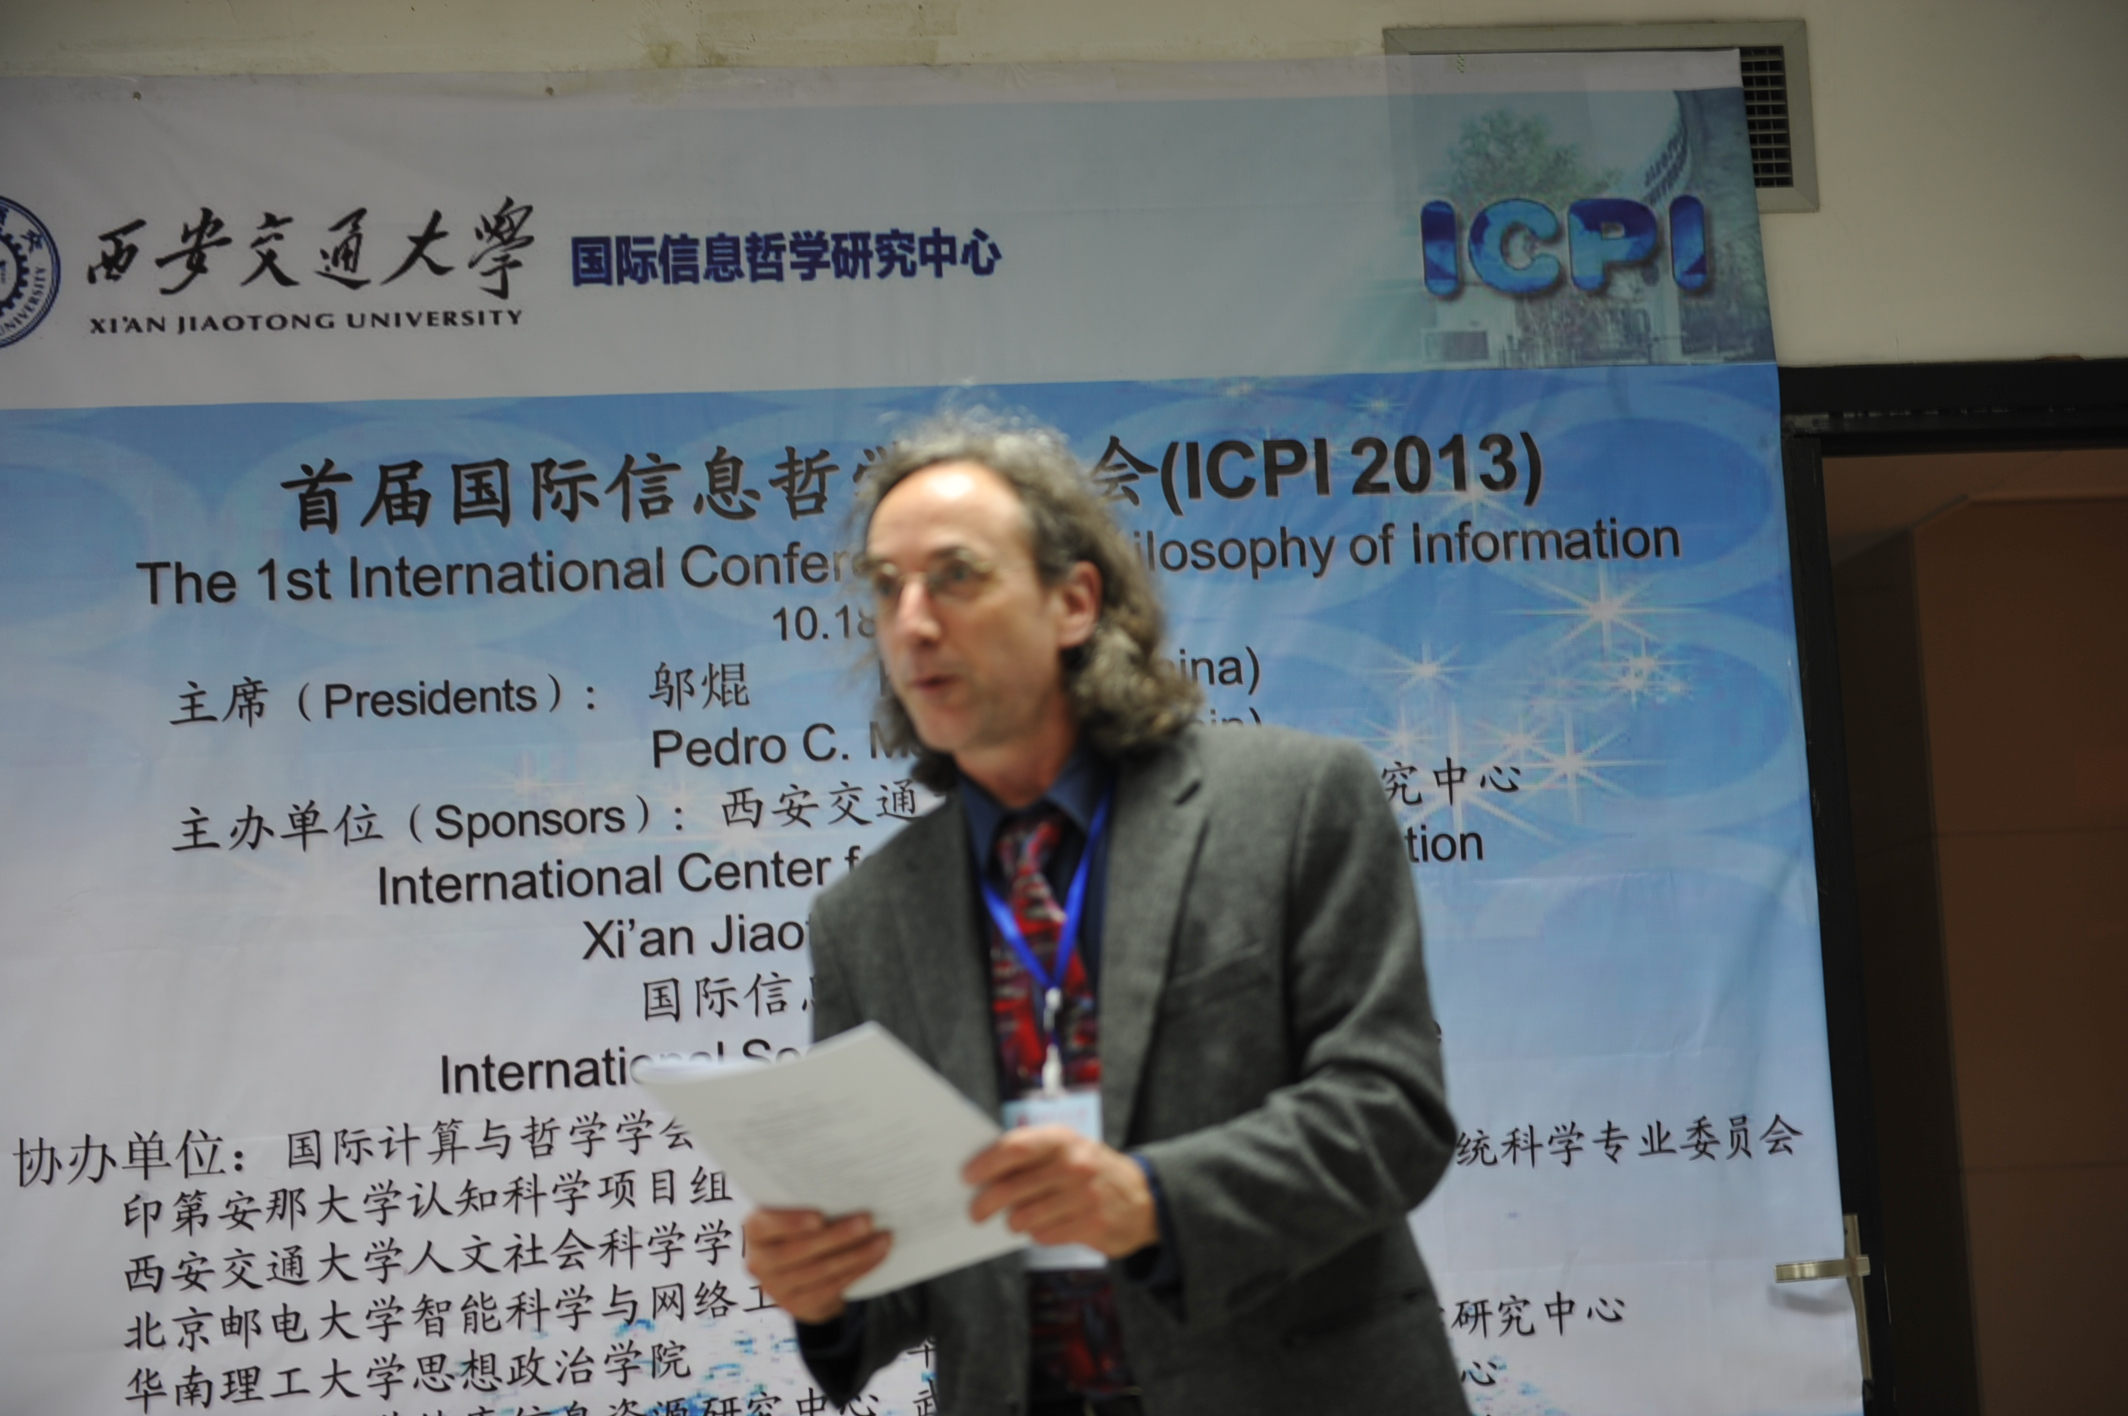 Ken Herold presents at the First International Conference on the Philosophy of Information in China.